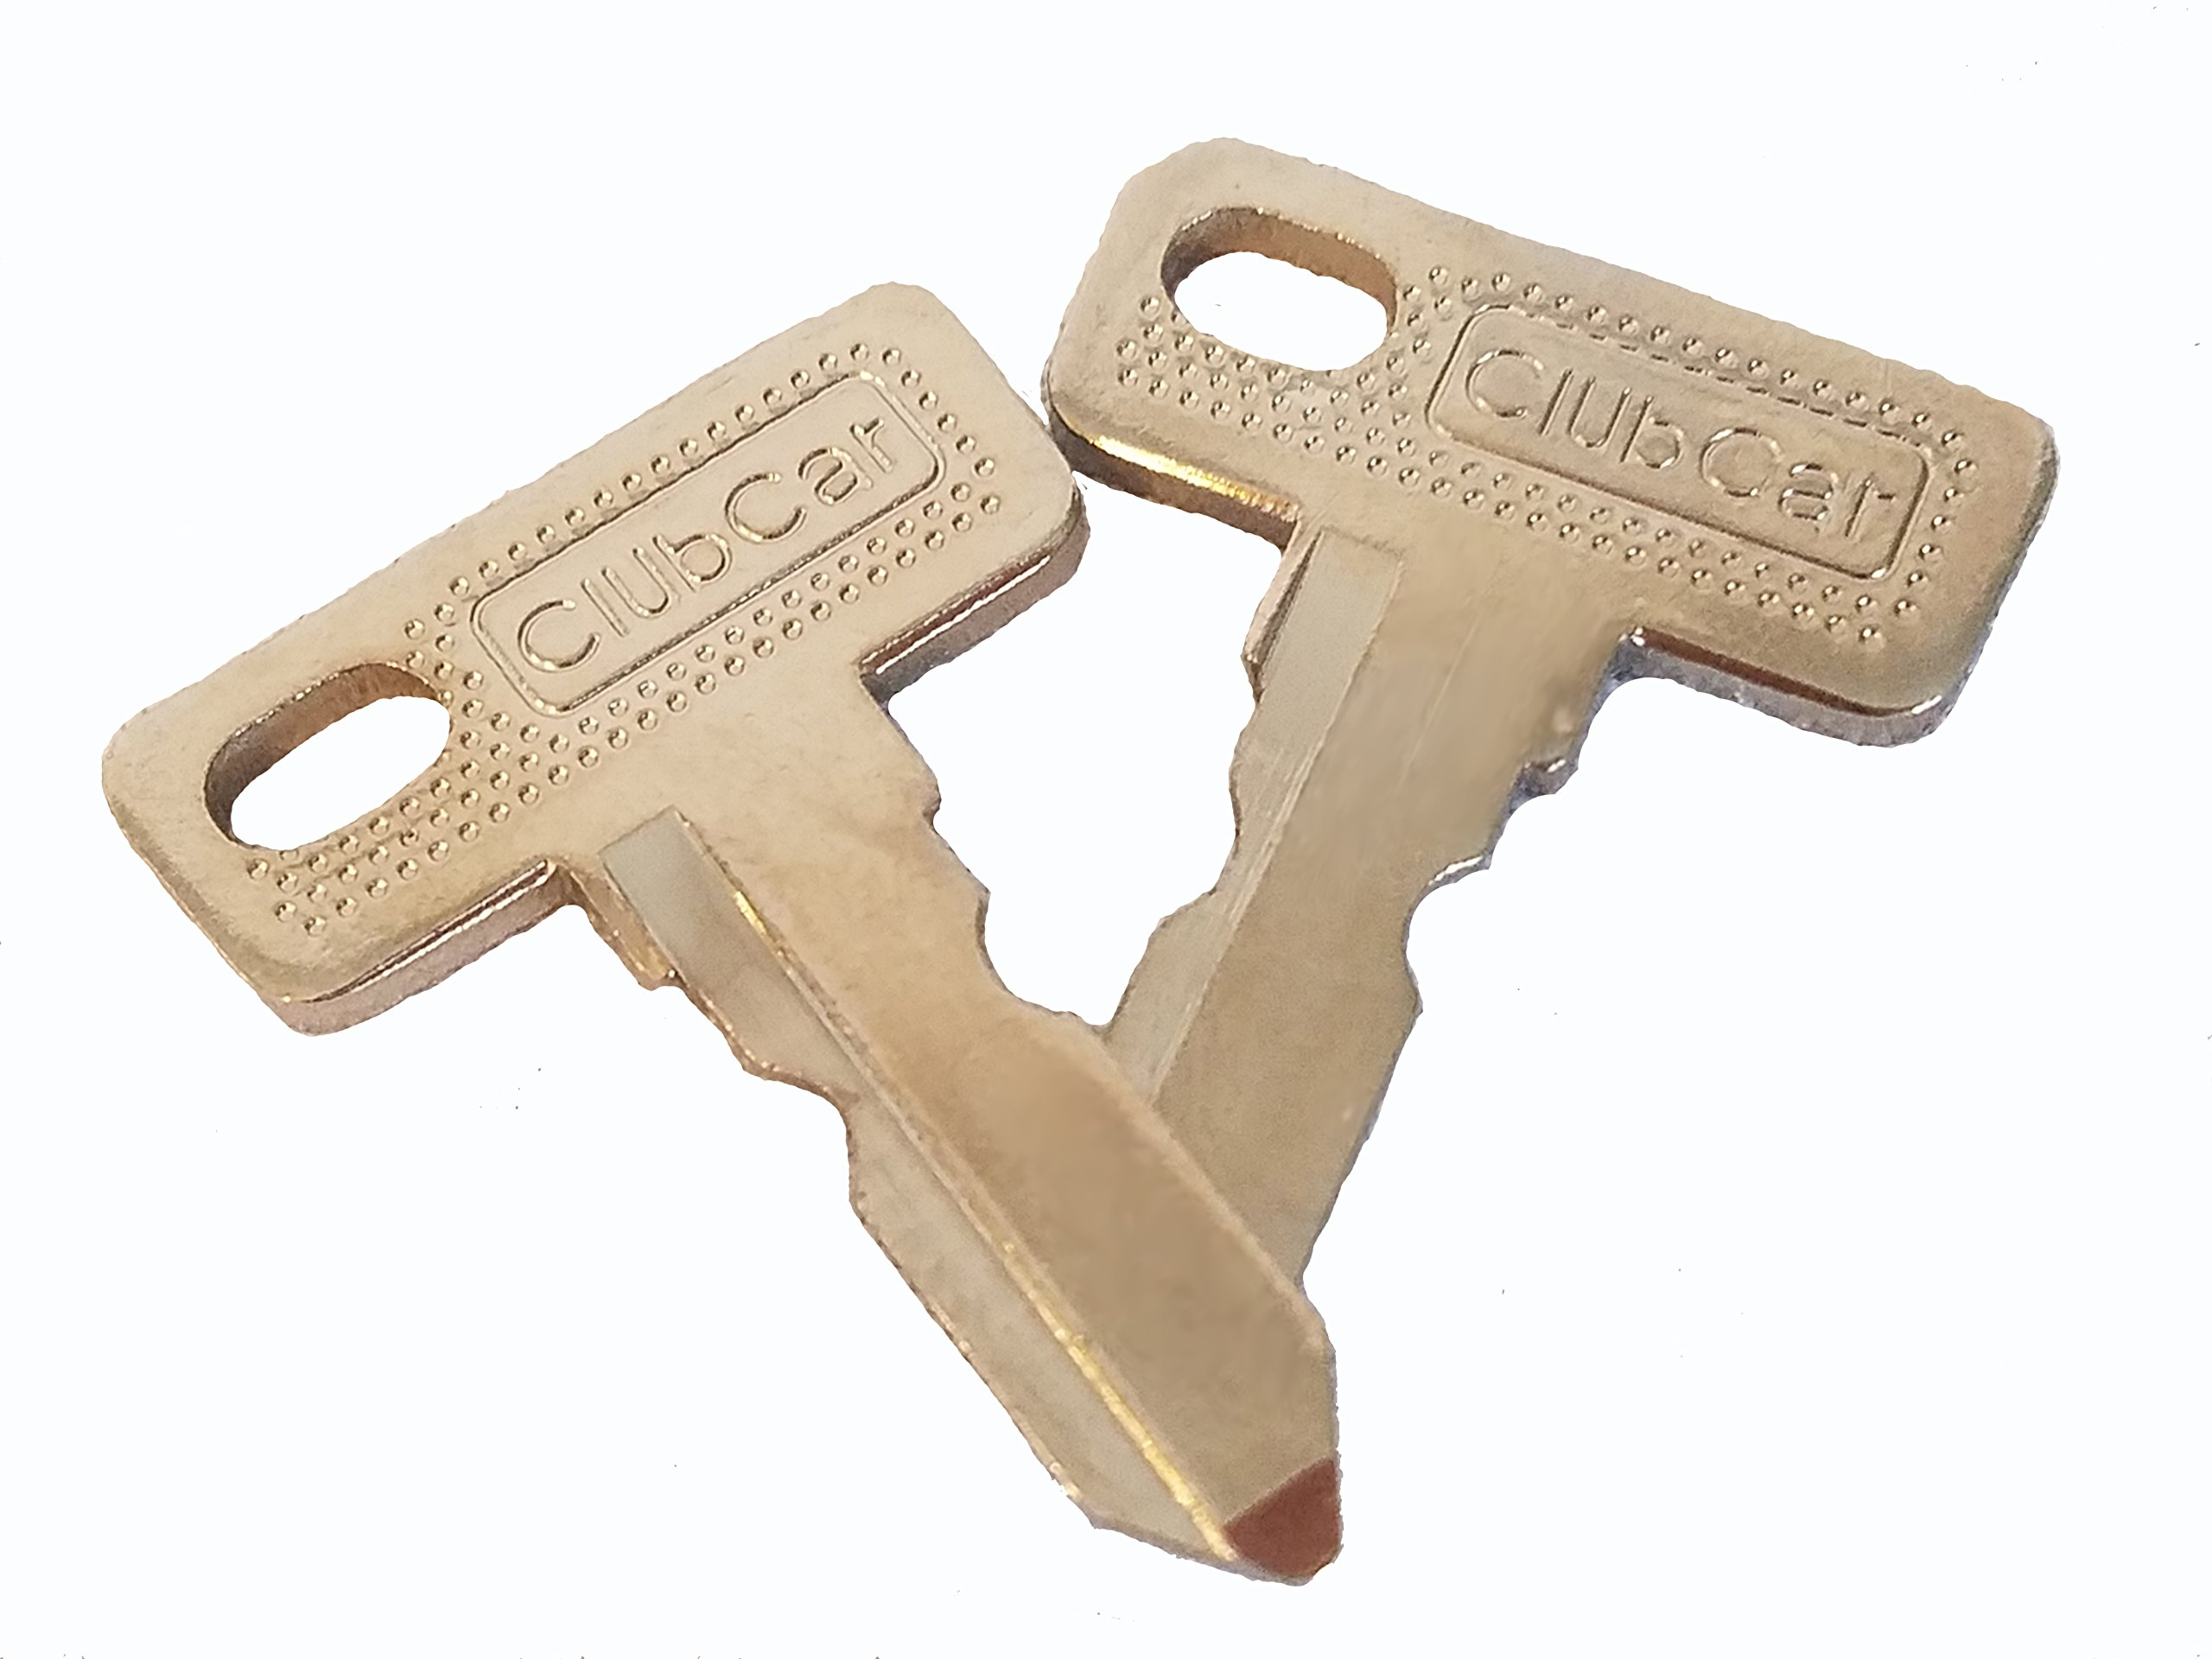 Club Car DS/Precedent-1982+ Gas/Electric Golf Cart Replacement Ignition Key x 2 DON'T BUY THE FAKES